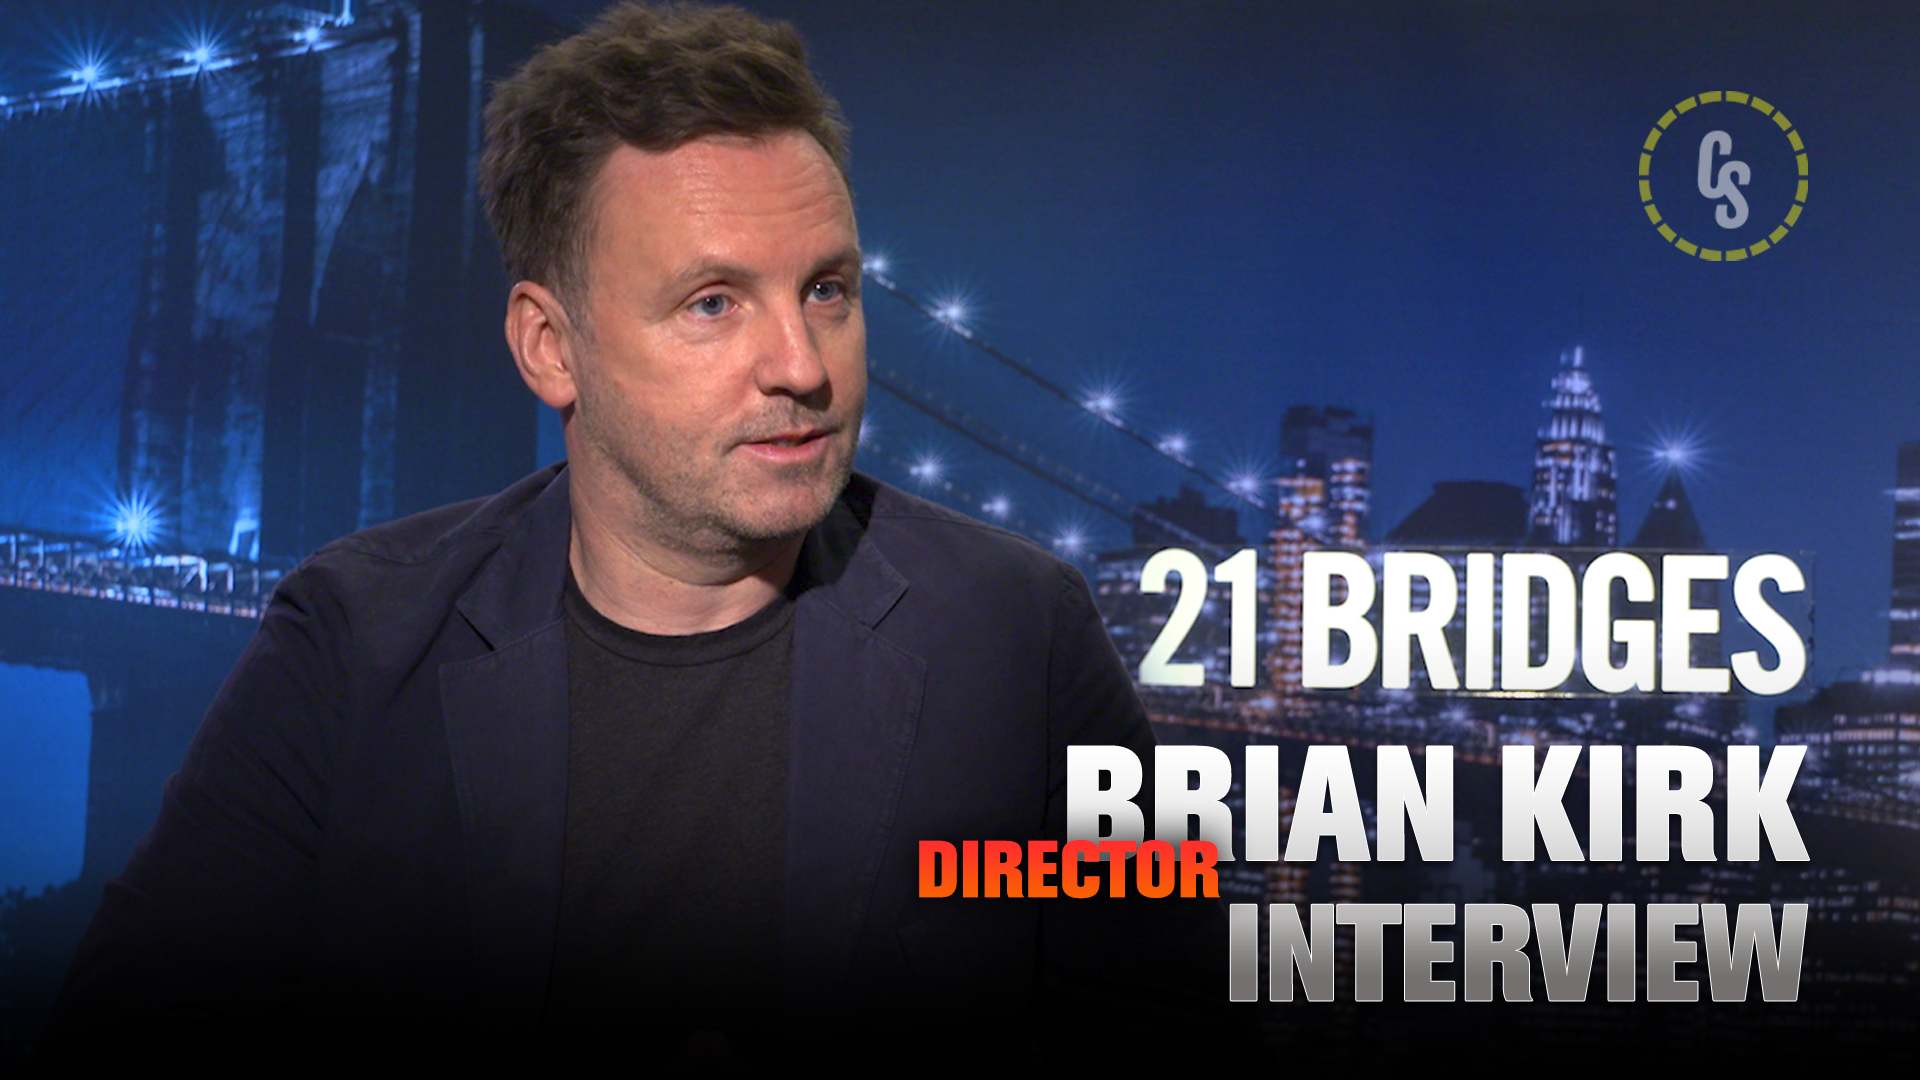 CS Video: Director Brian Kirk